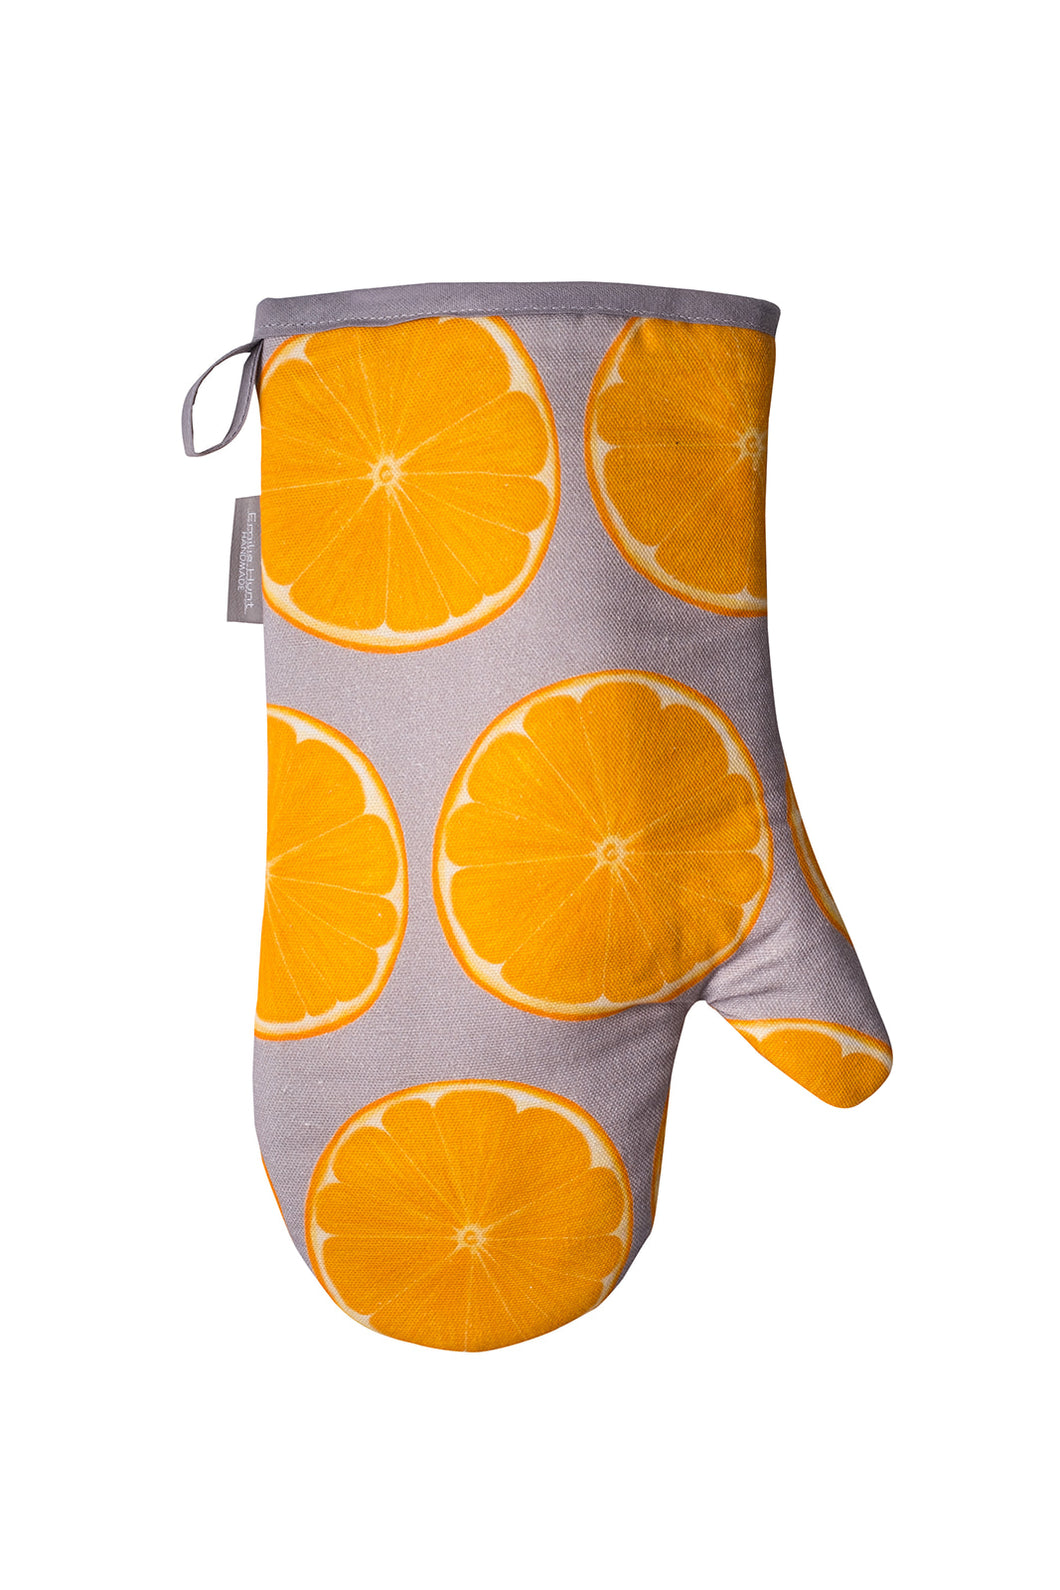 Orange Slice Single Oven Mitt